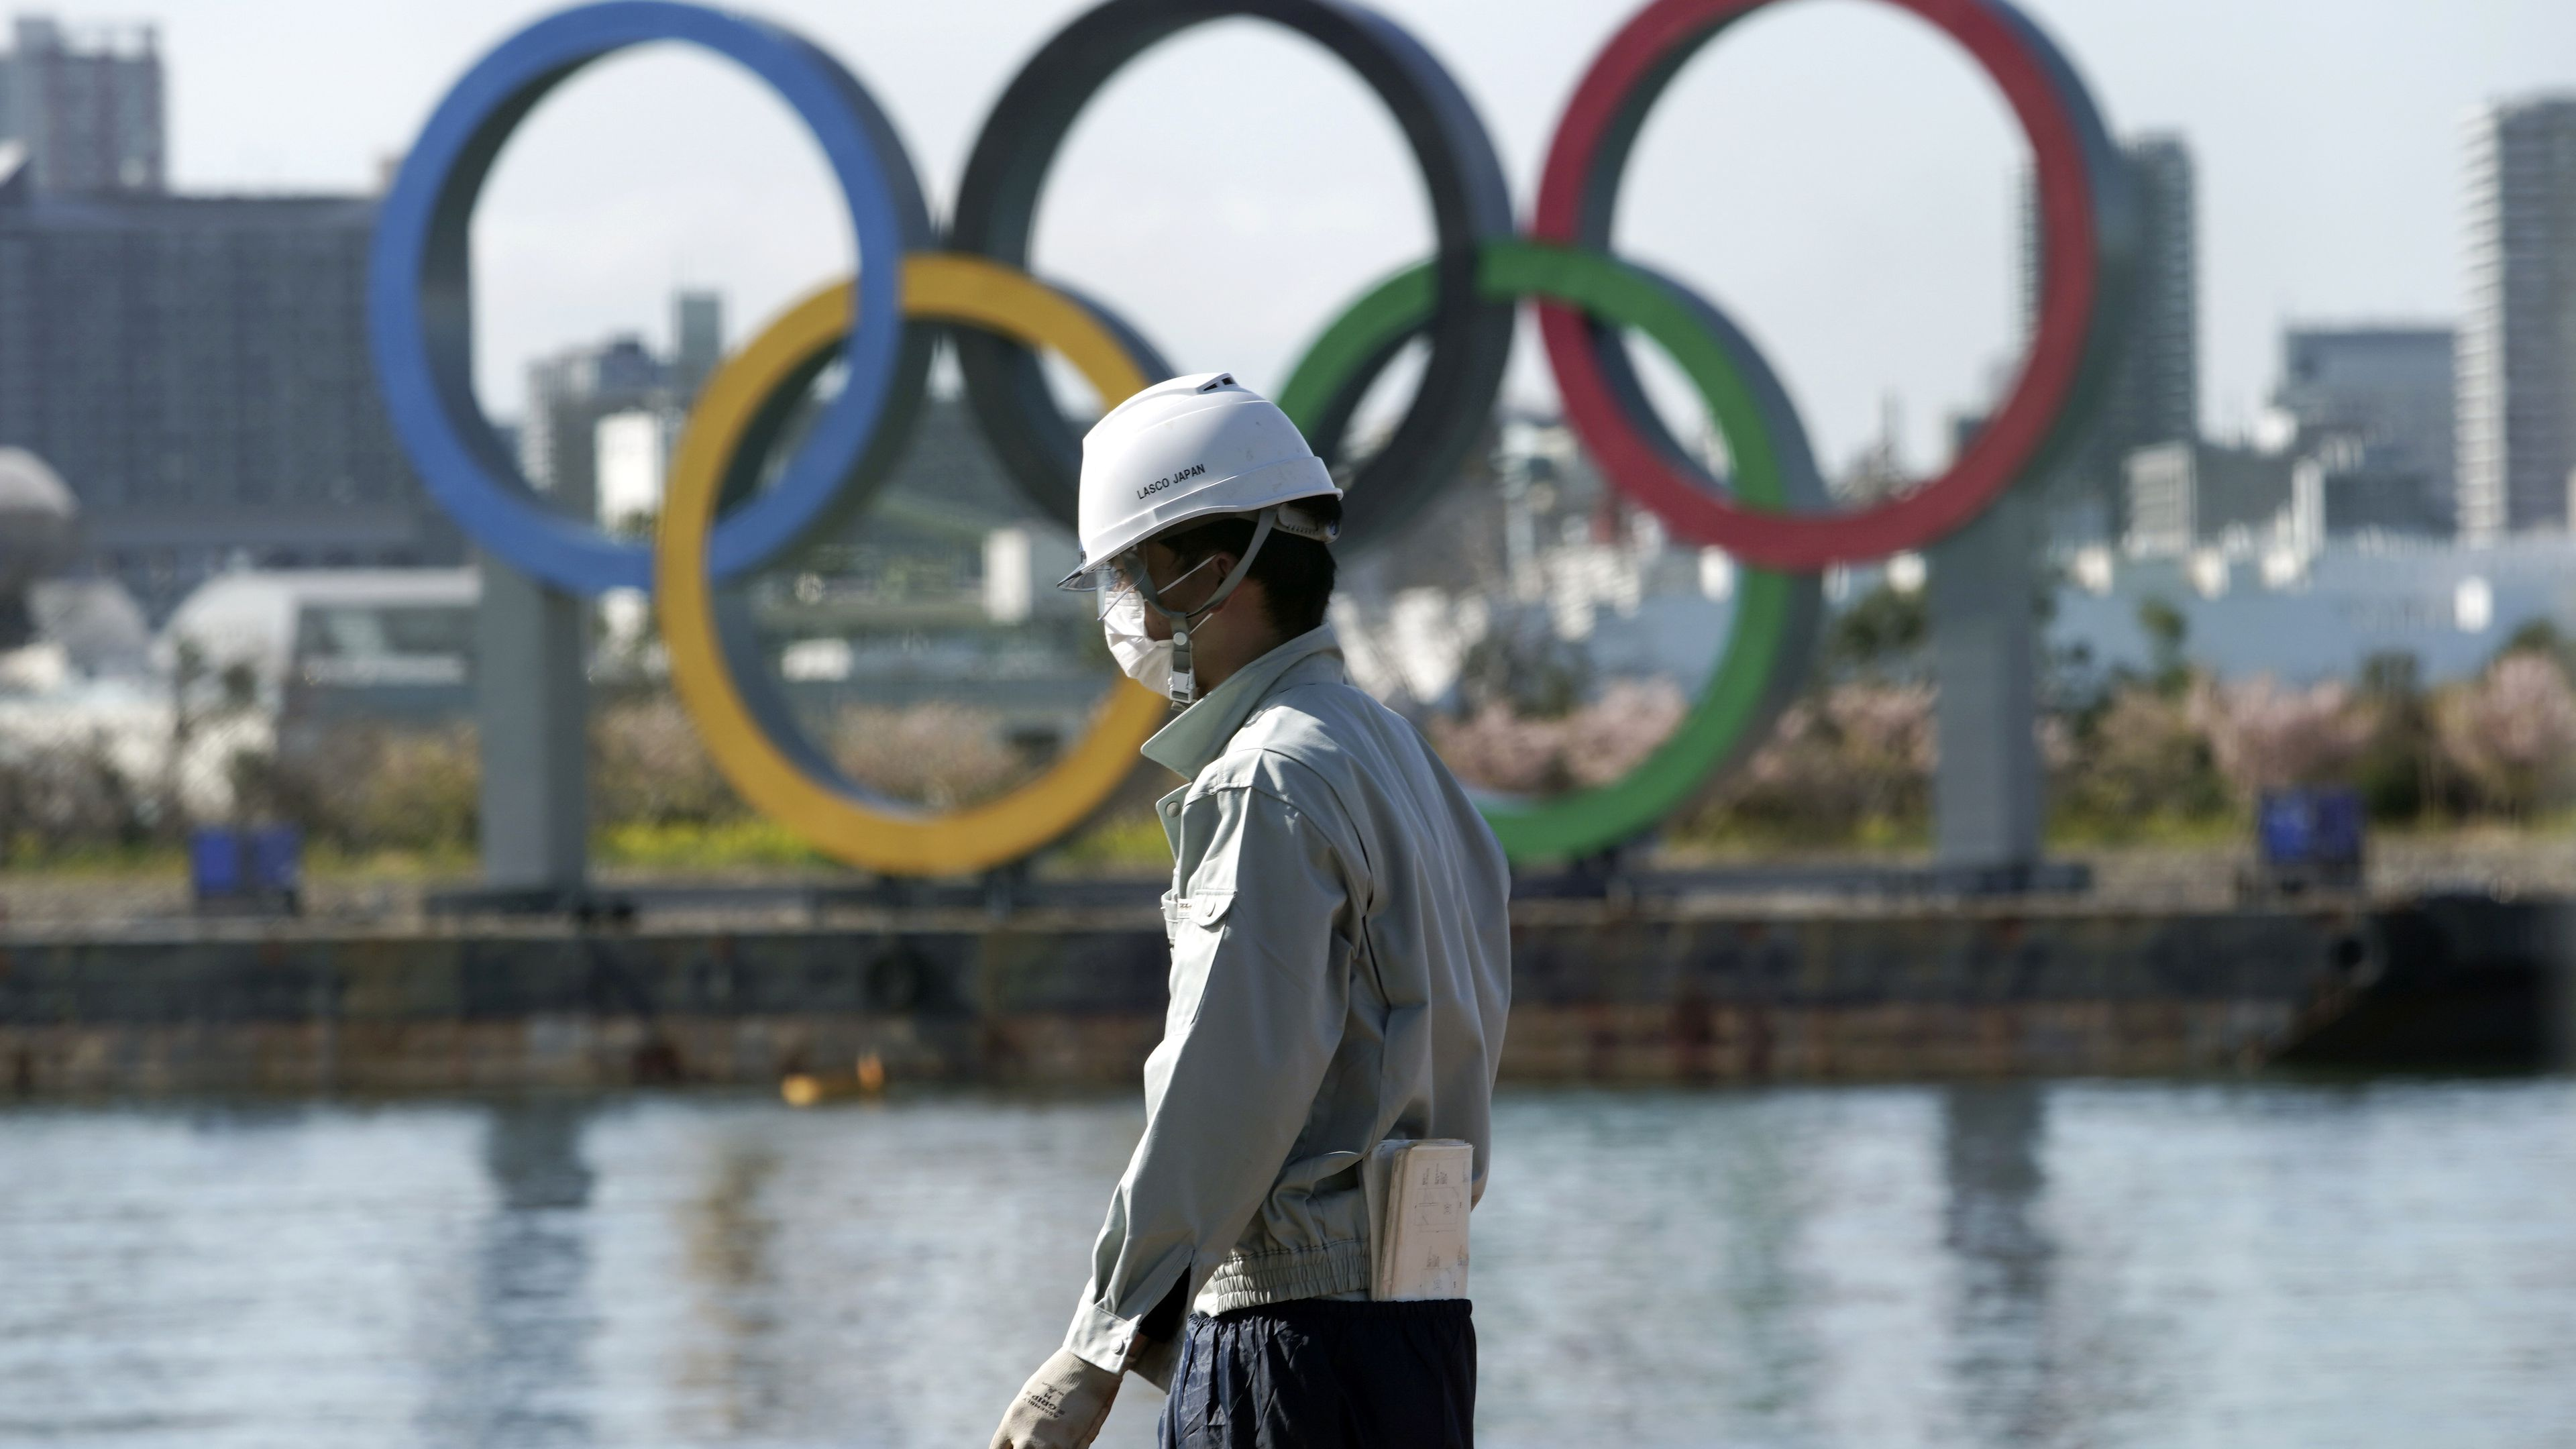 IOC to discuss Tokyo 2020 delay but rules out cancellation, Aussie athletes barred